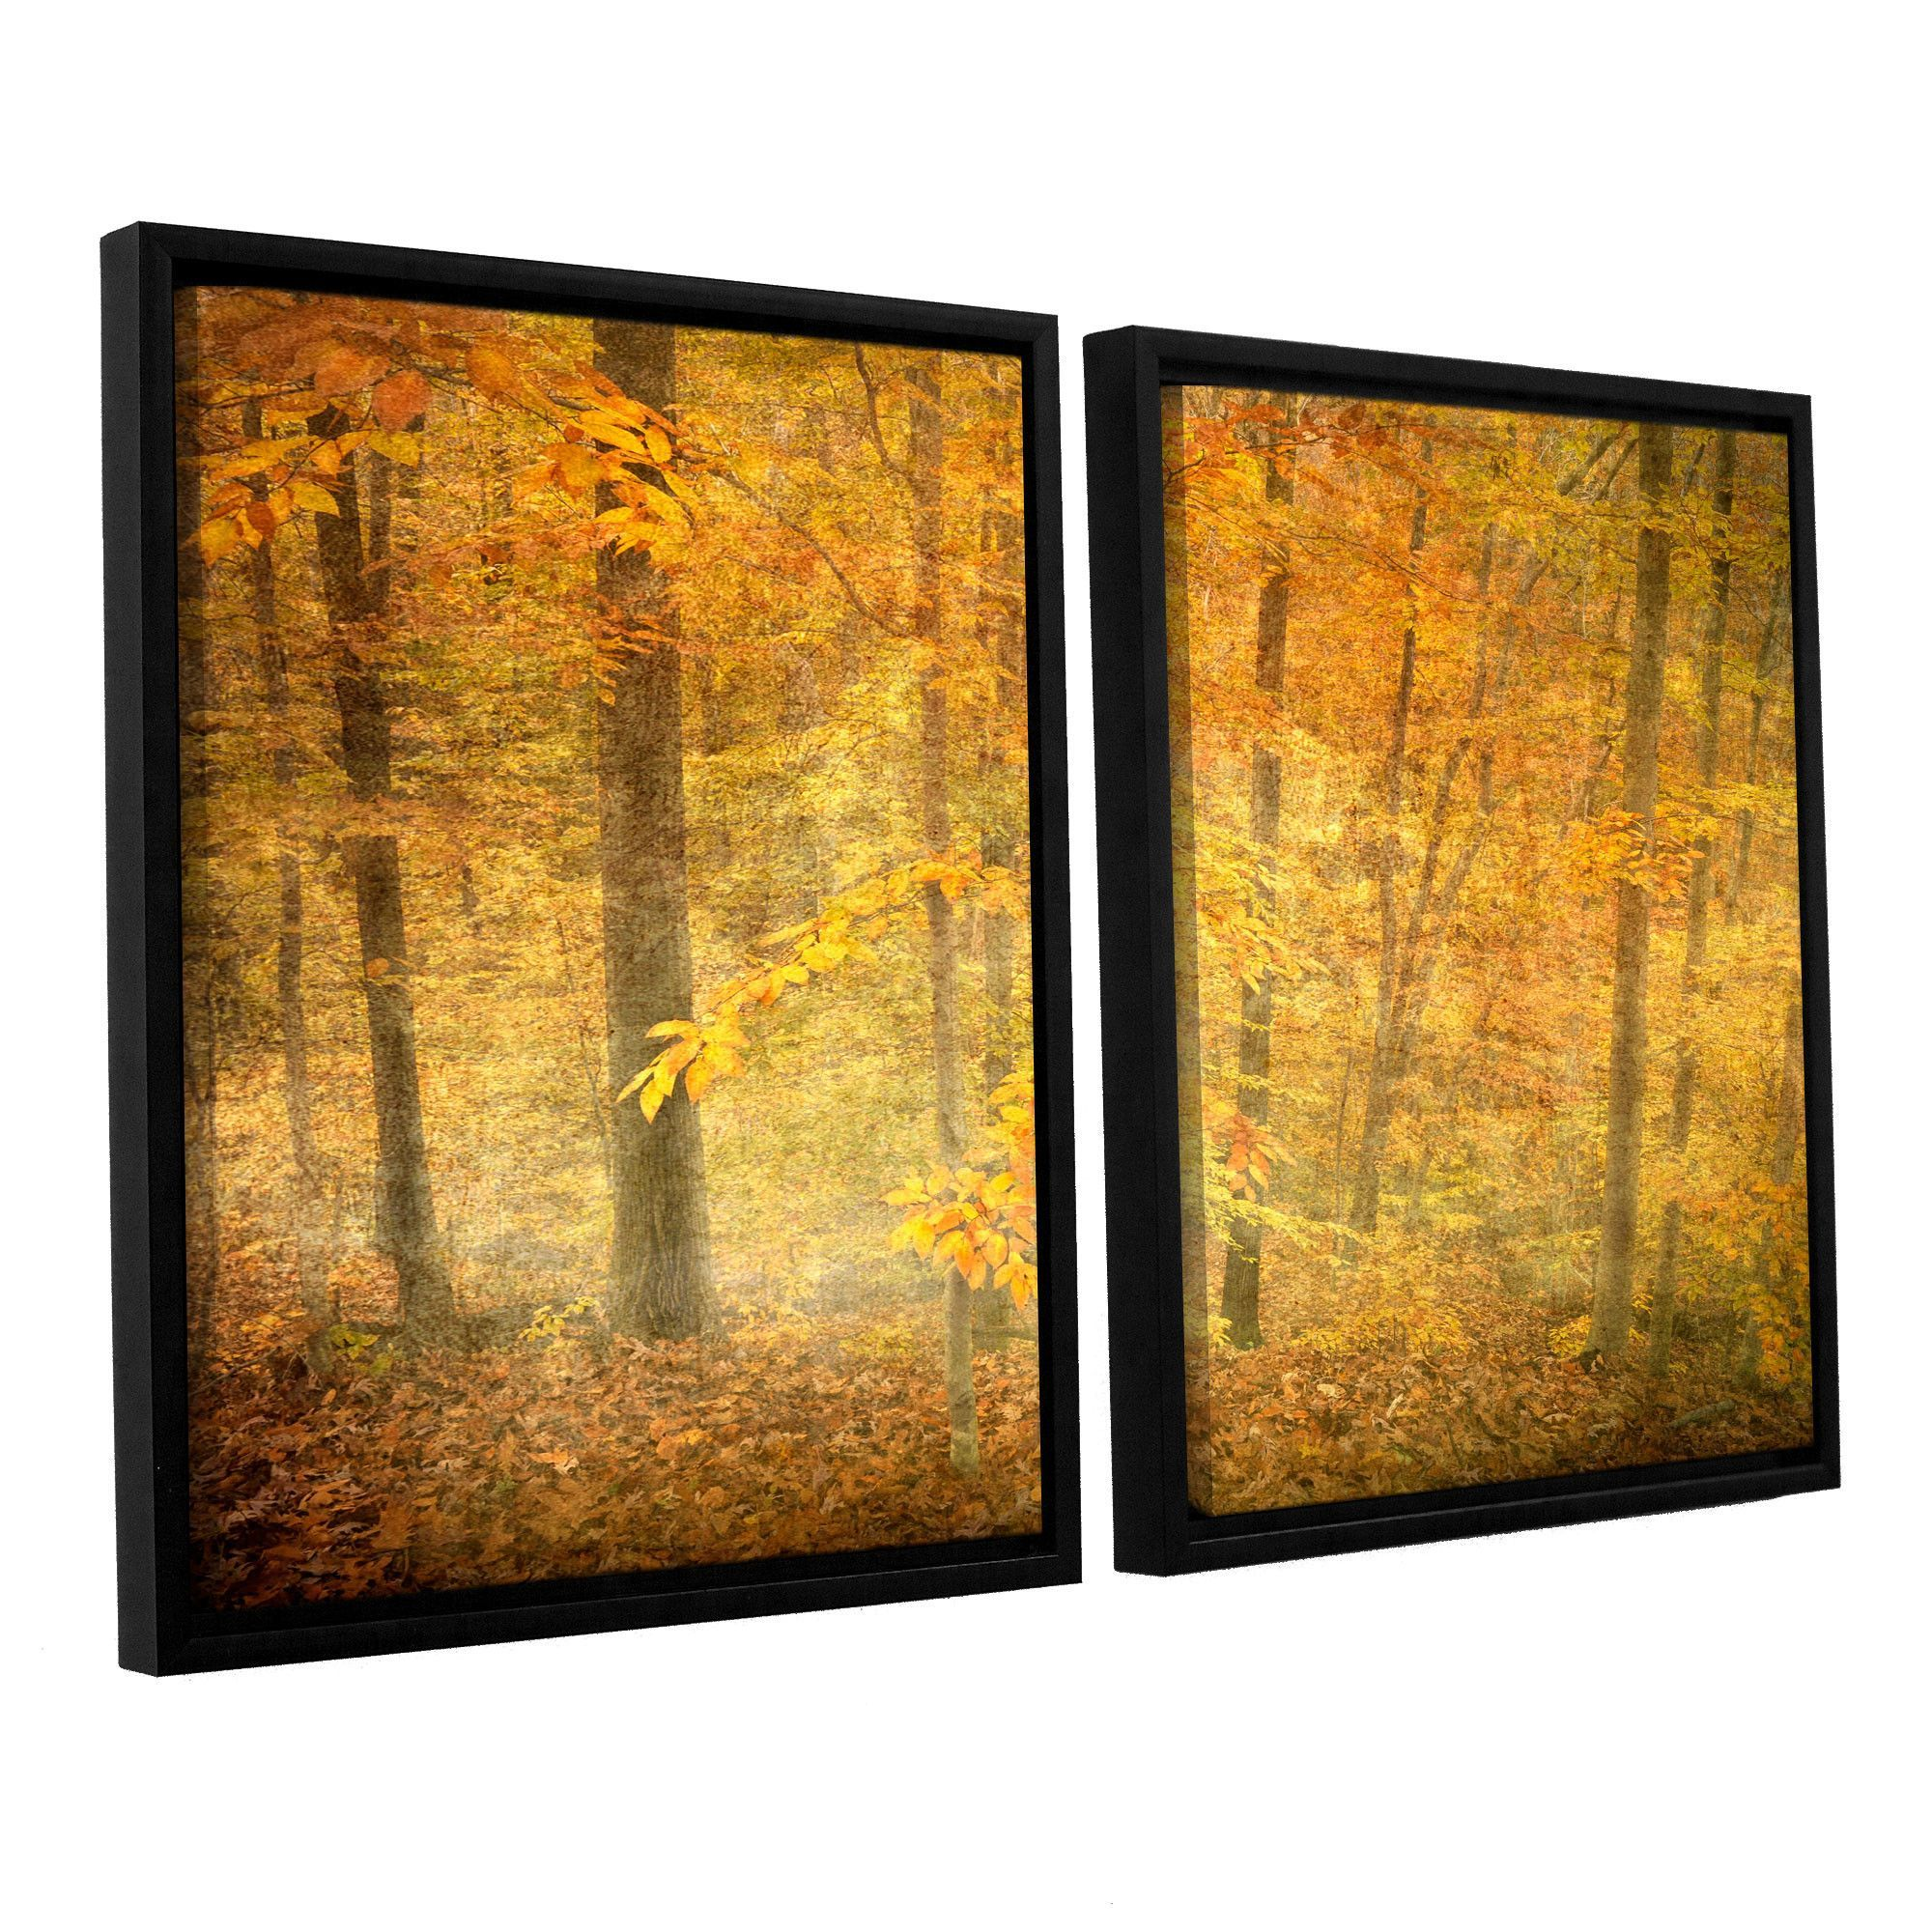 Lost In Autumn by Antonio Raggio 2 Piece Floater Framed Canvas Set ...